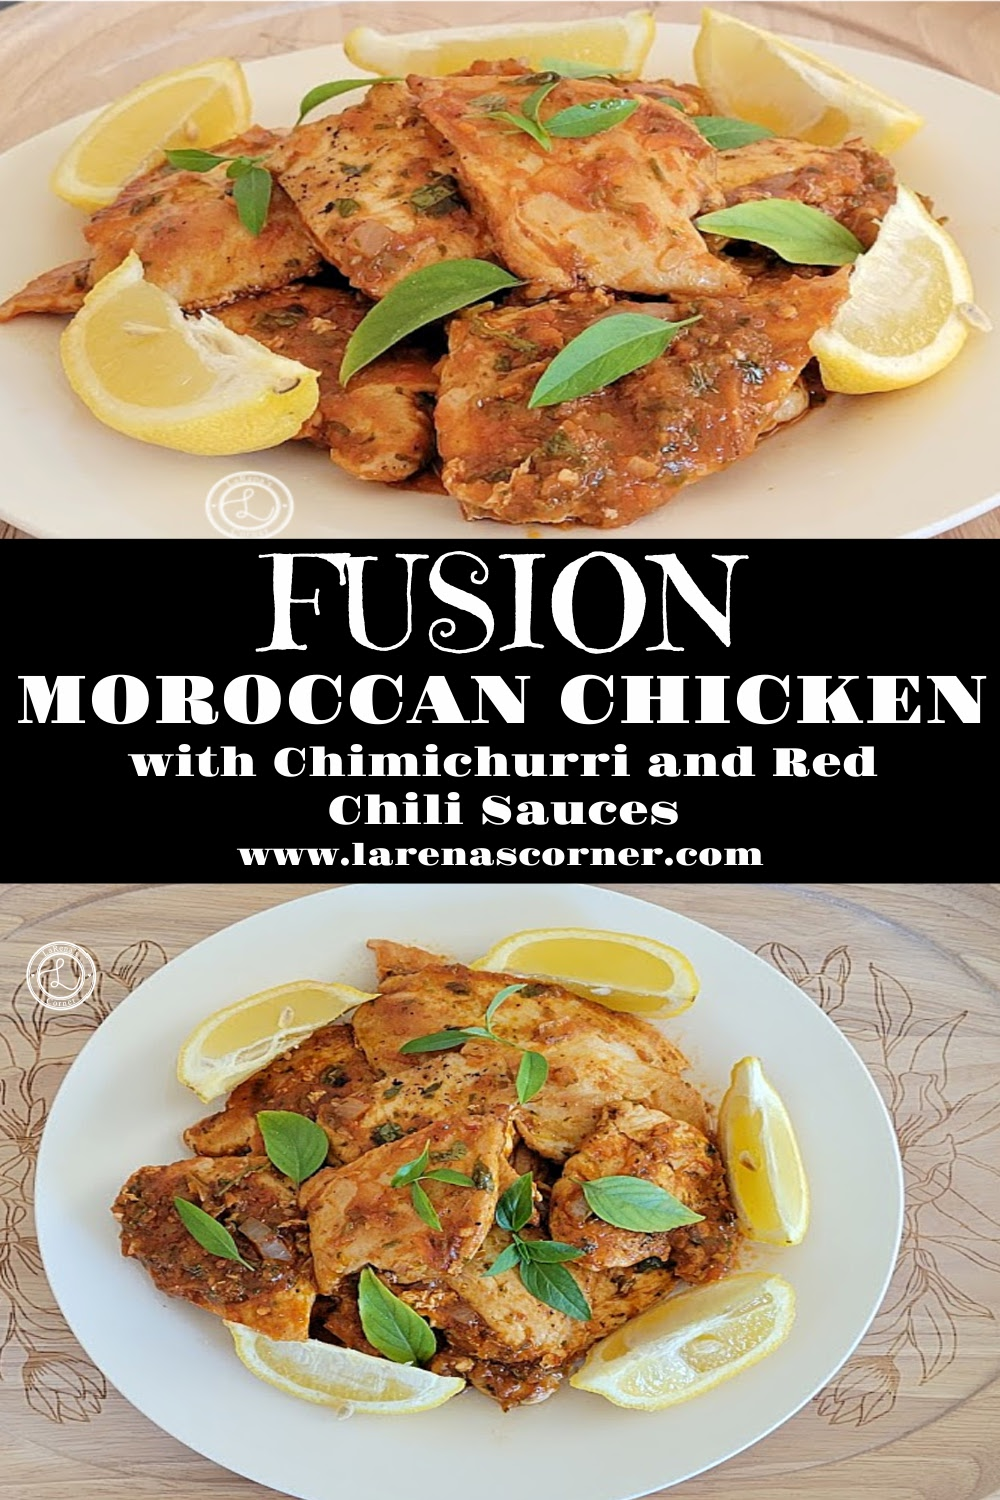 Two pictures of Fusion Moroccan Chicken a side view and a top view picture.